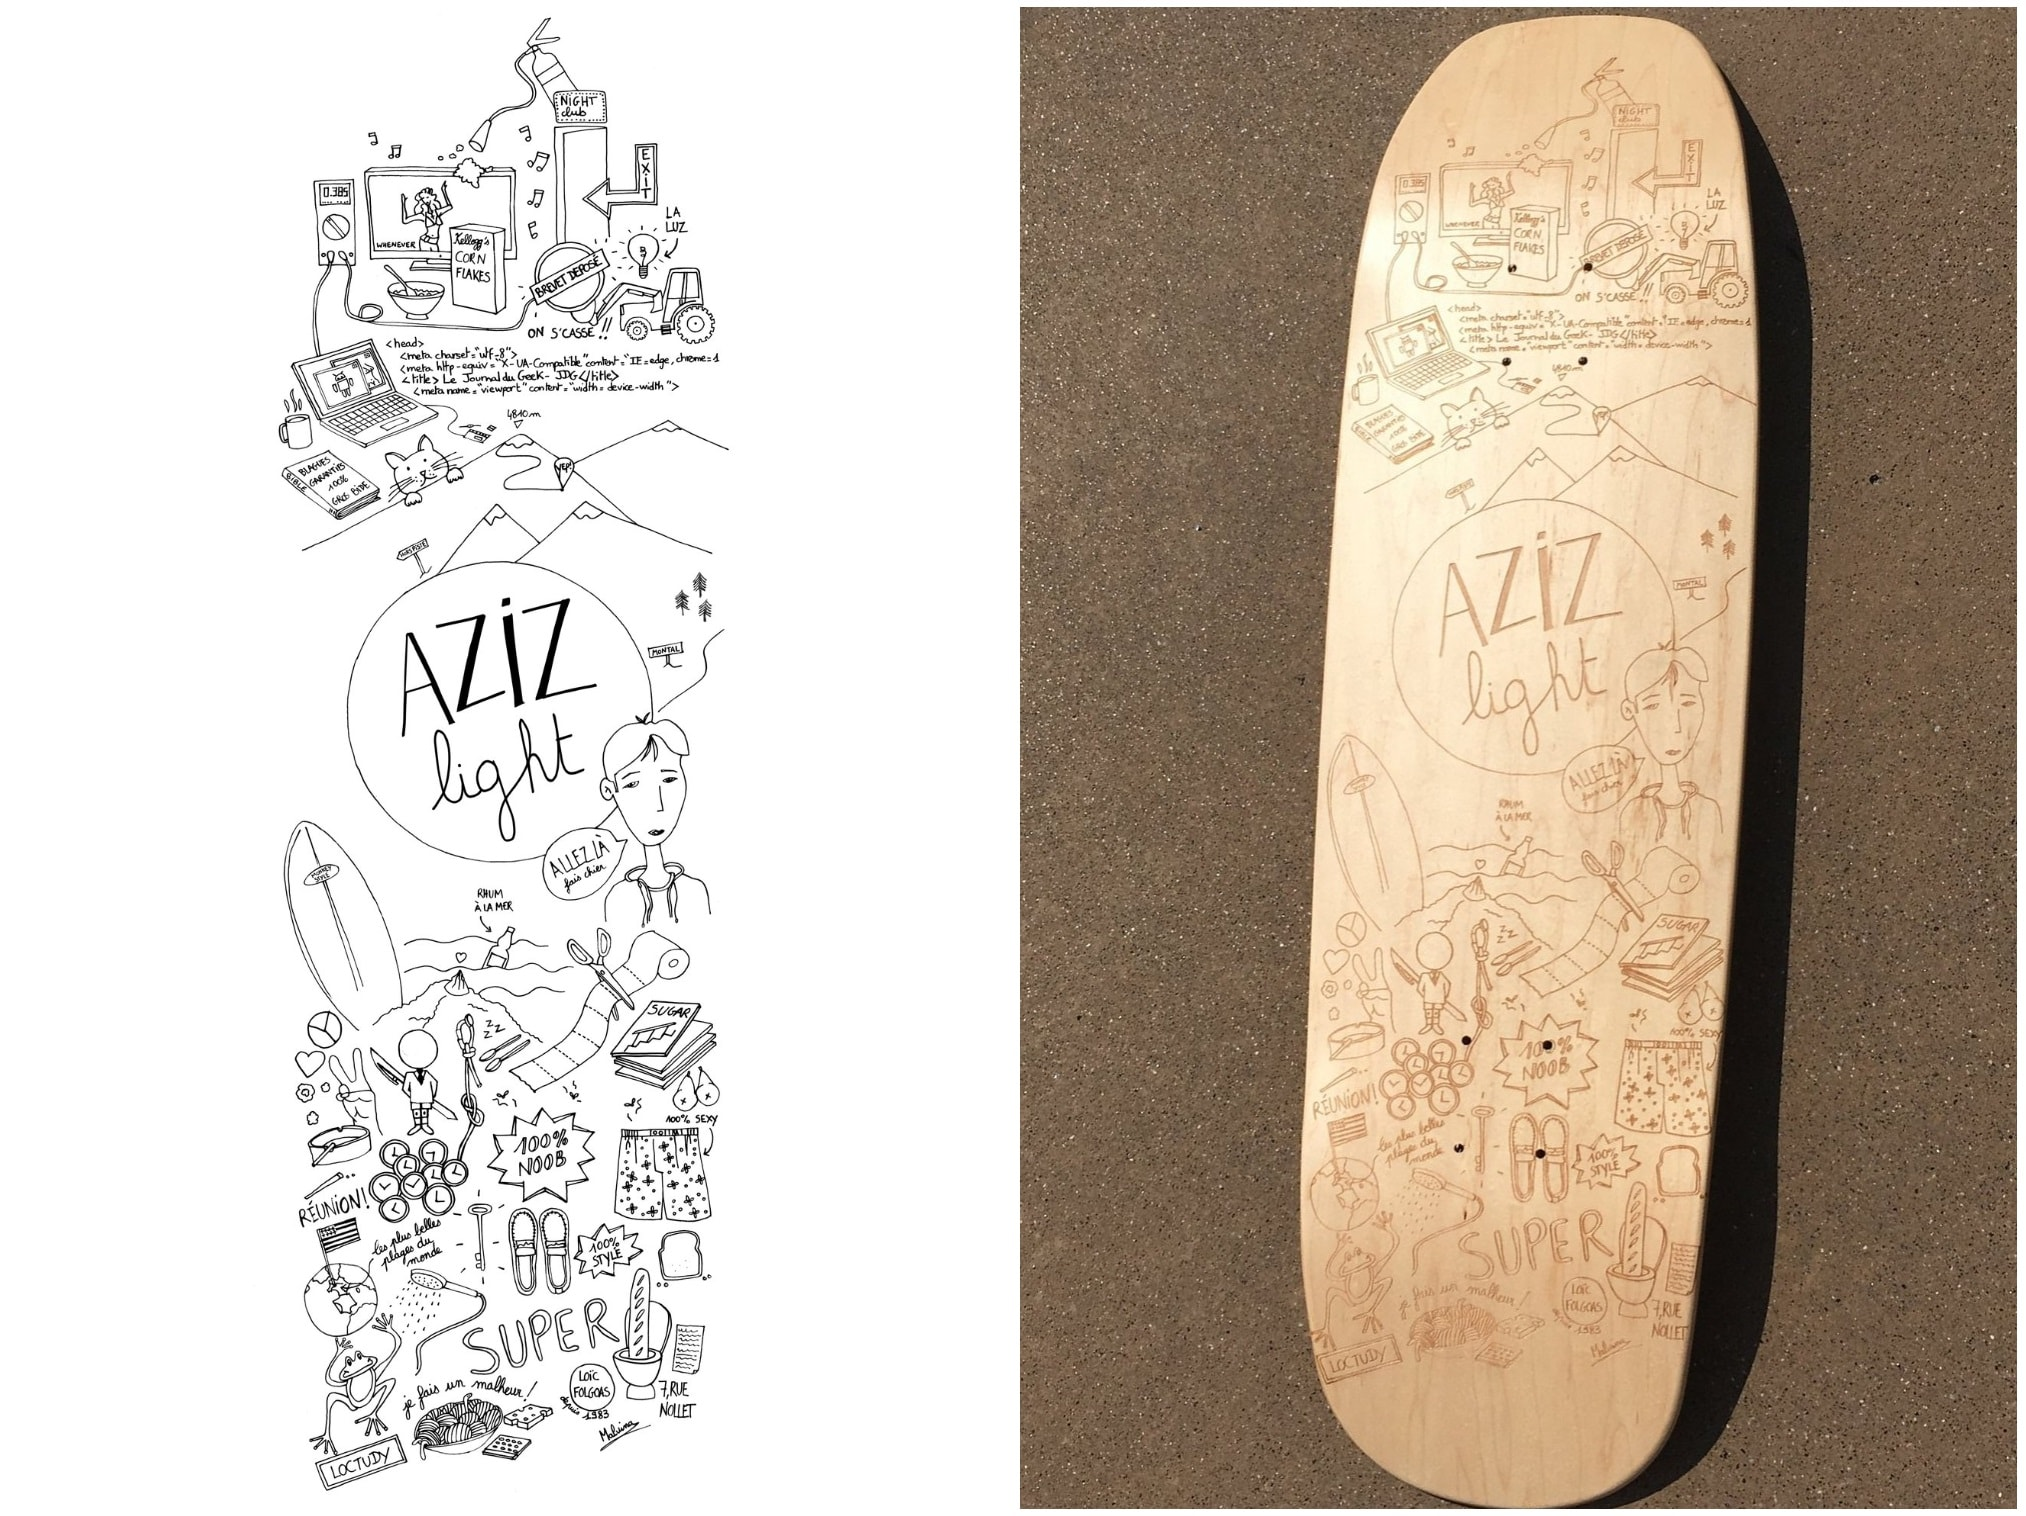 The original file from Illustrator and the result of the engraving on the deck